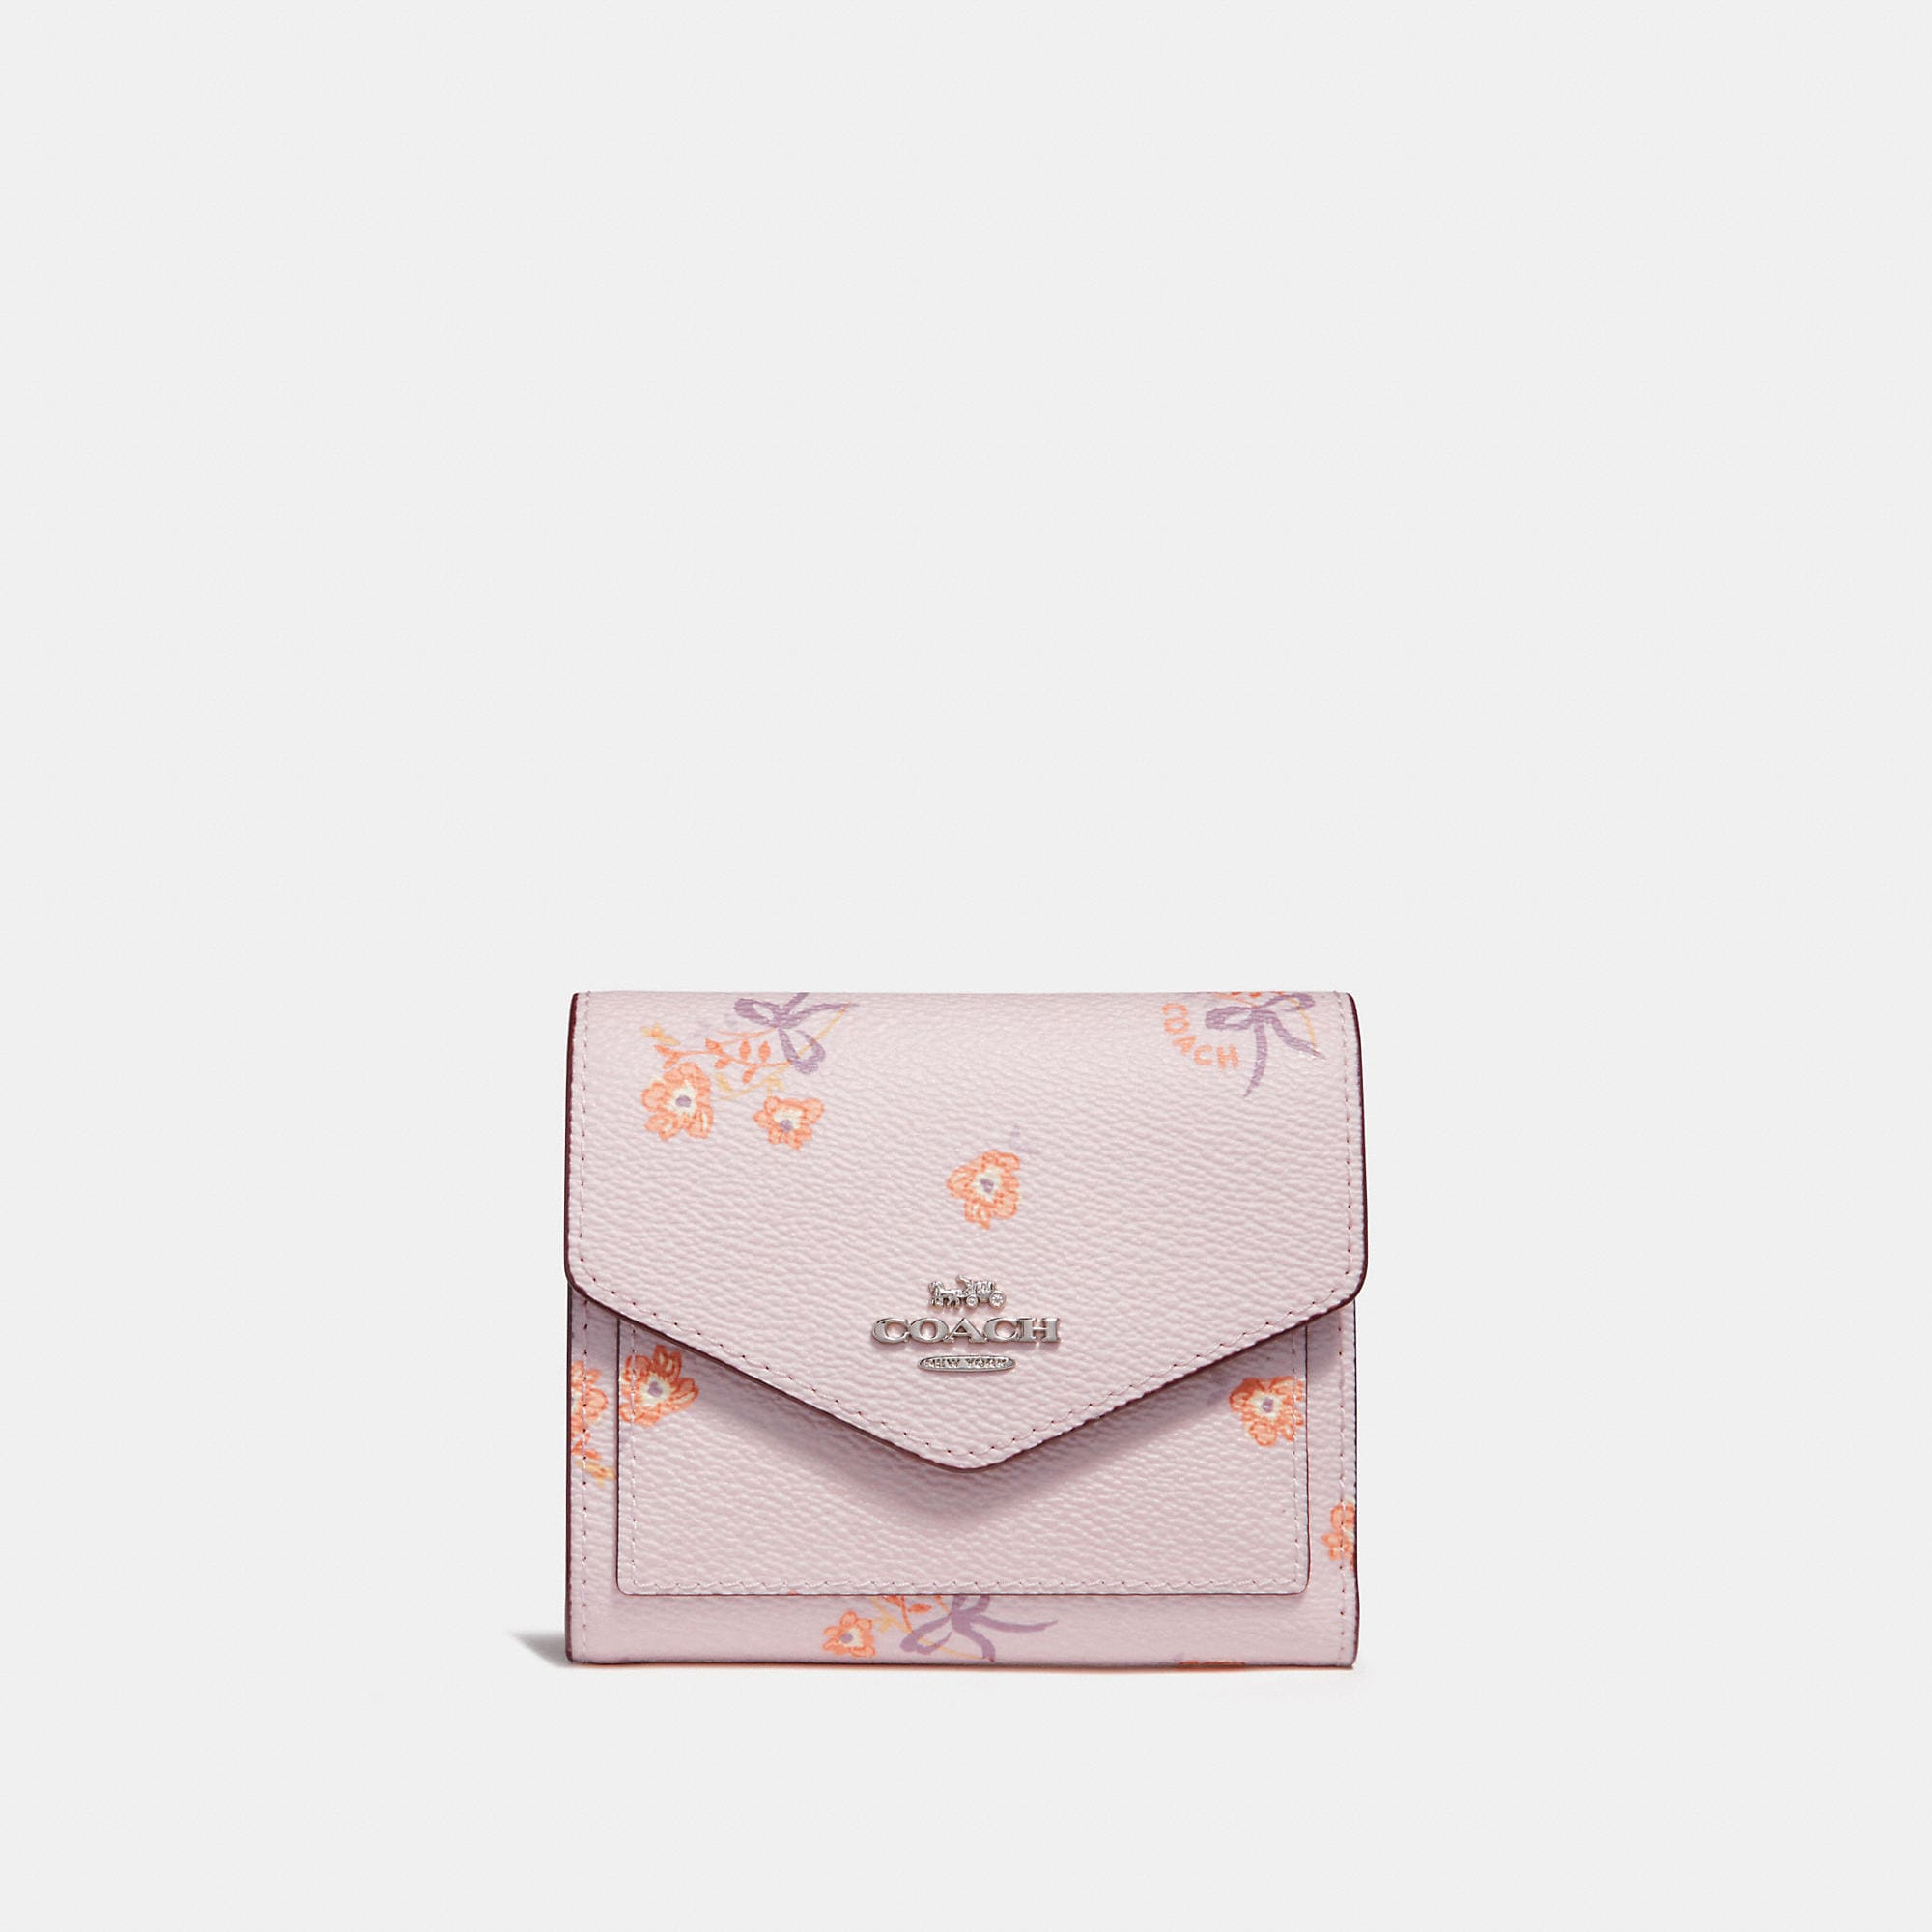 d55934a7f9813 Coach Small Wallet With Floral Bow Print In Ice Pink Floral Bow/Silver